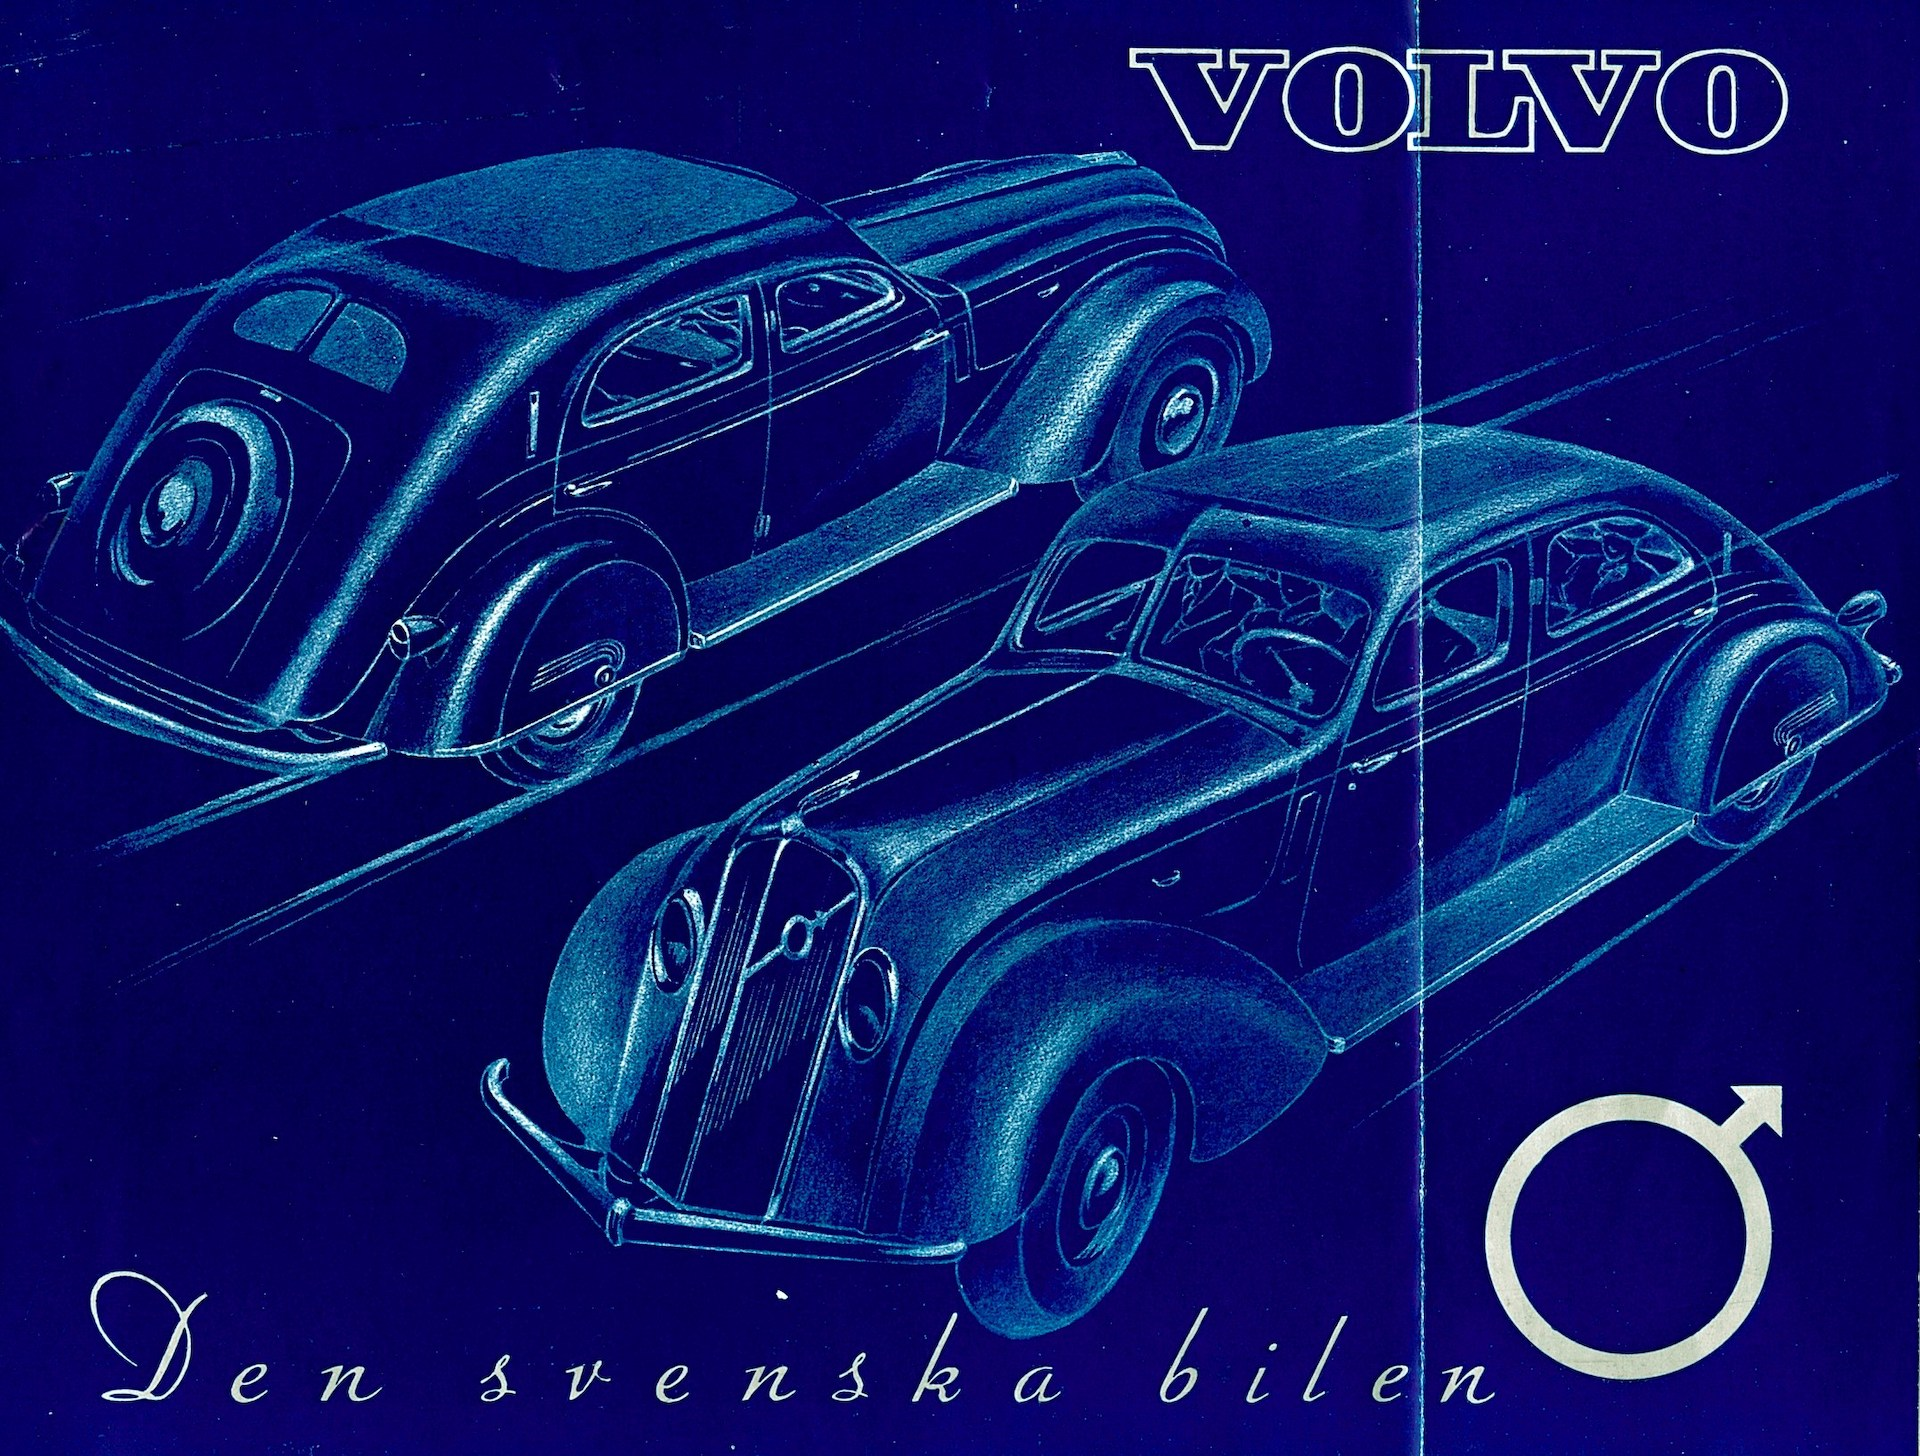 PV36 from 1934, sketch for broschure